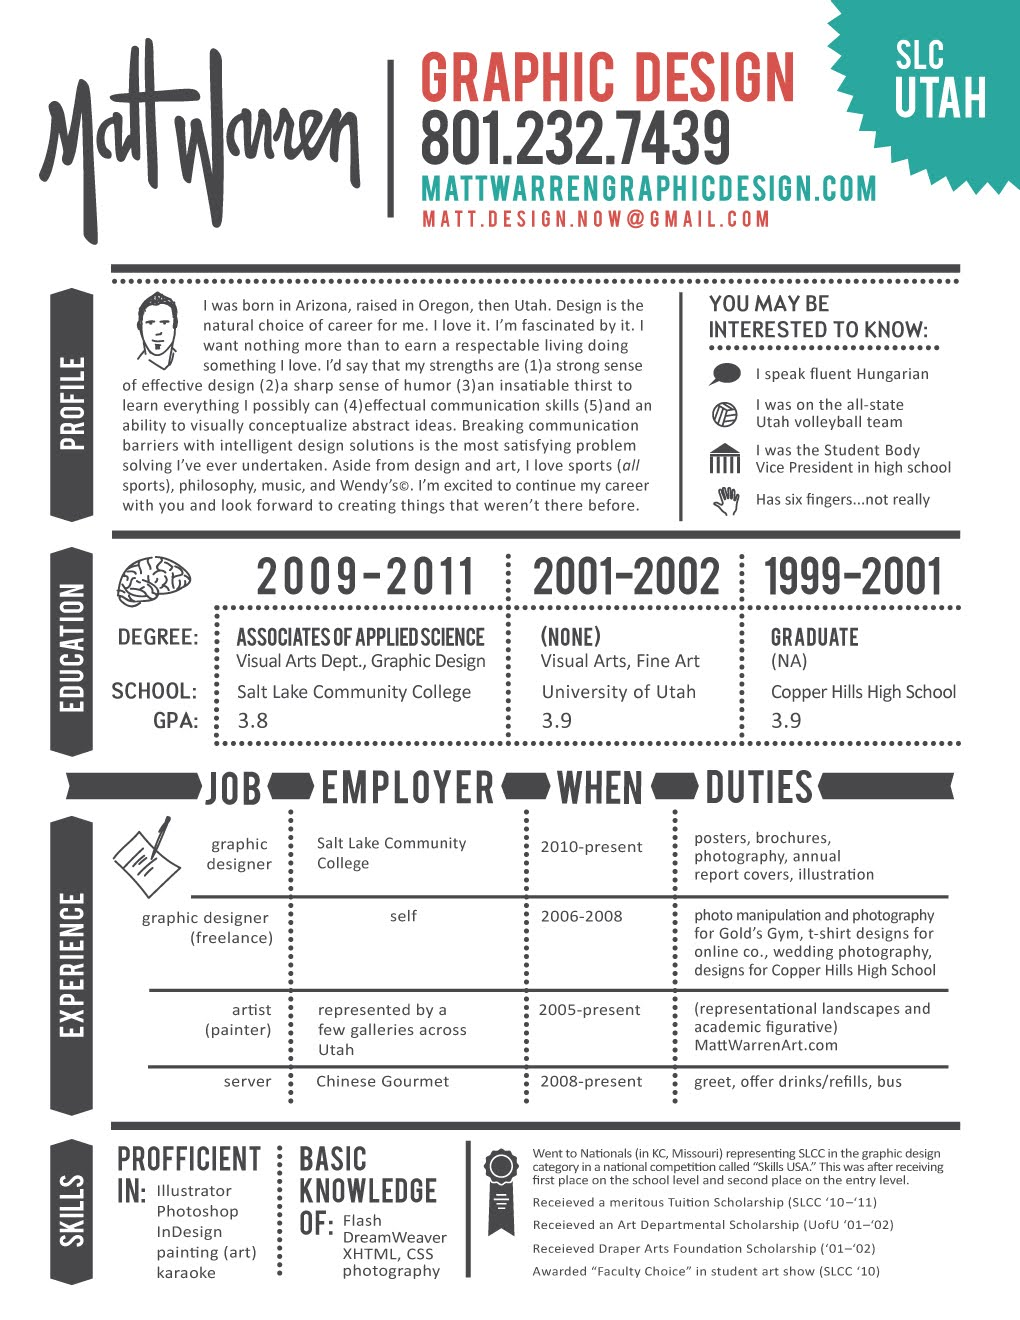 Opposenewapstandardsus  Gorgeous  Images About Hire Me On Pinterest  Graphic Designer Resume  With Fetching  Images About Hire Me On Pinterest  Graphic Designer Resume Resume Design And Resume With Amusing College Job Resume Also Cinematographer Resume In Addition Resume Summary Vs Objective And Fill In Resume Online Free As Well As Unix Resume Additionally Submitting Resume Via Email From Pinterestcom With Opposenewapstandardsus  Fetching  Images About Hire Me On Pinterest  Graphic Designer Resume  With Amusing  Images About Hire Me On Pinterest  Graphic Designer Resume Resume Design And Resume And Gorgeous College Job Resume Also Cinematographer Resume In Addition Resume Summary Vs Objective From Pinterestcom